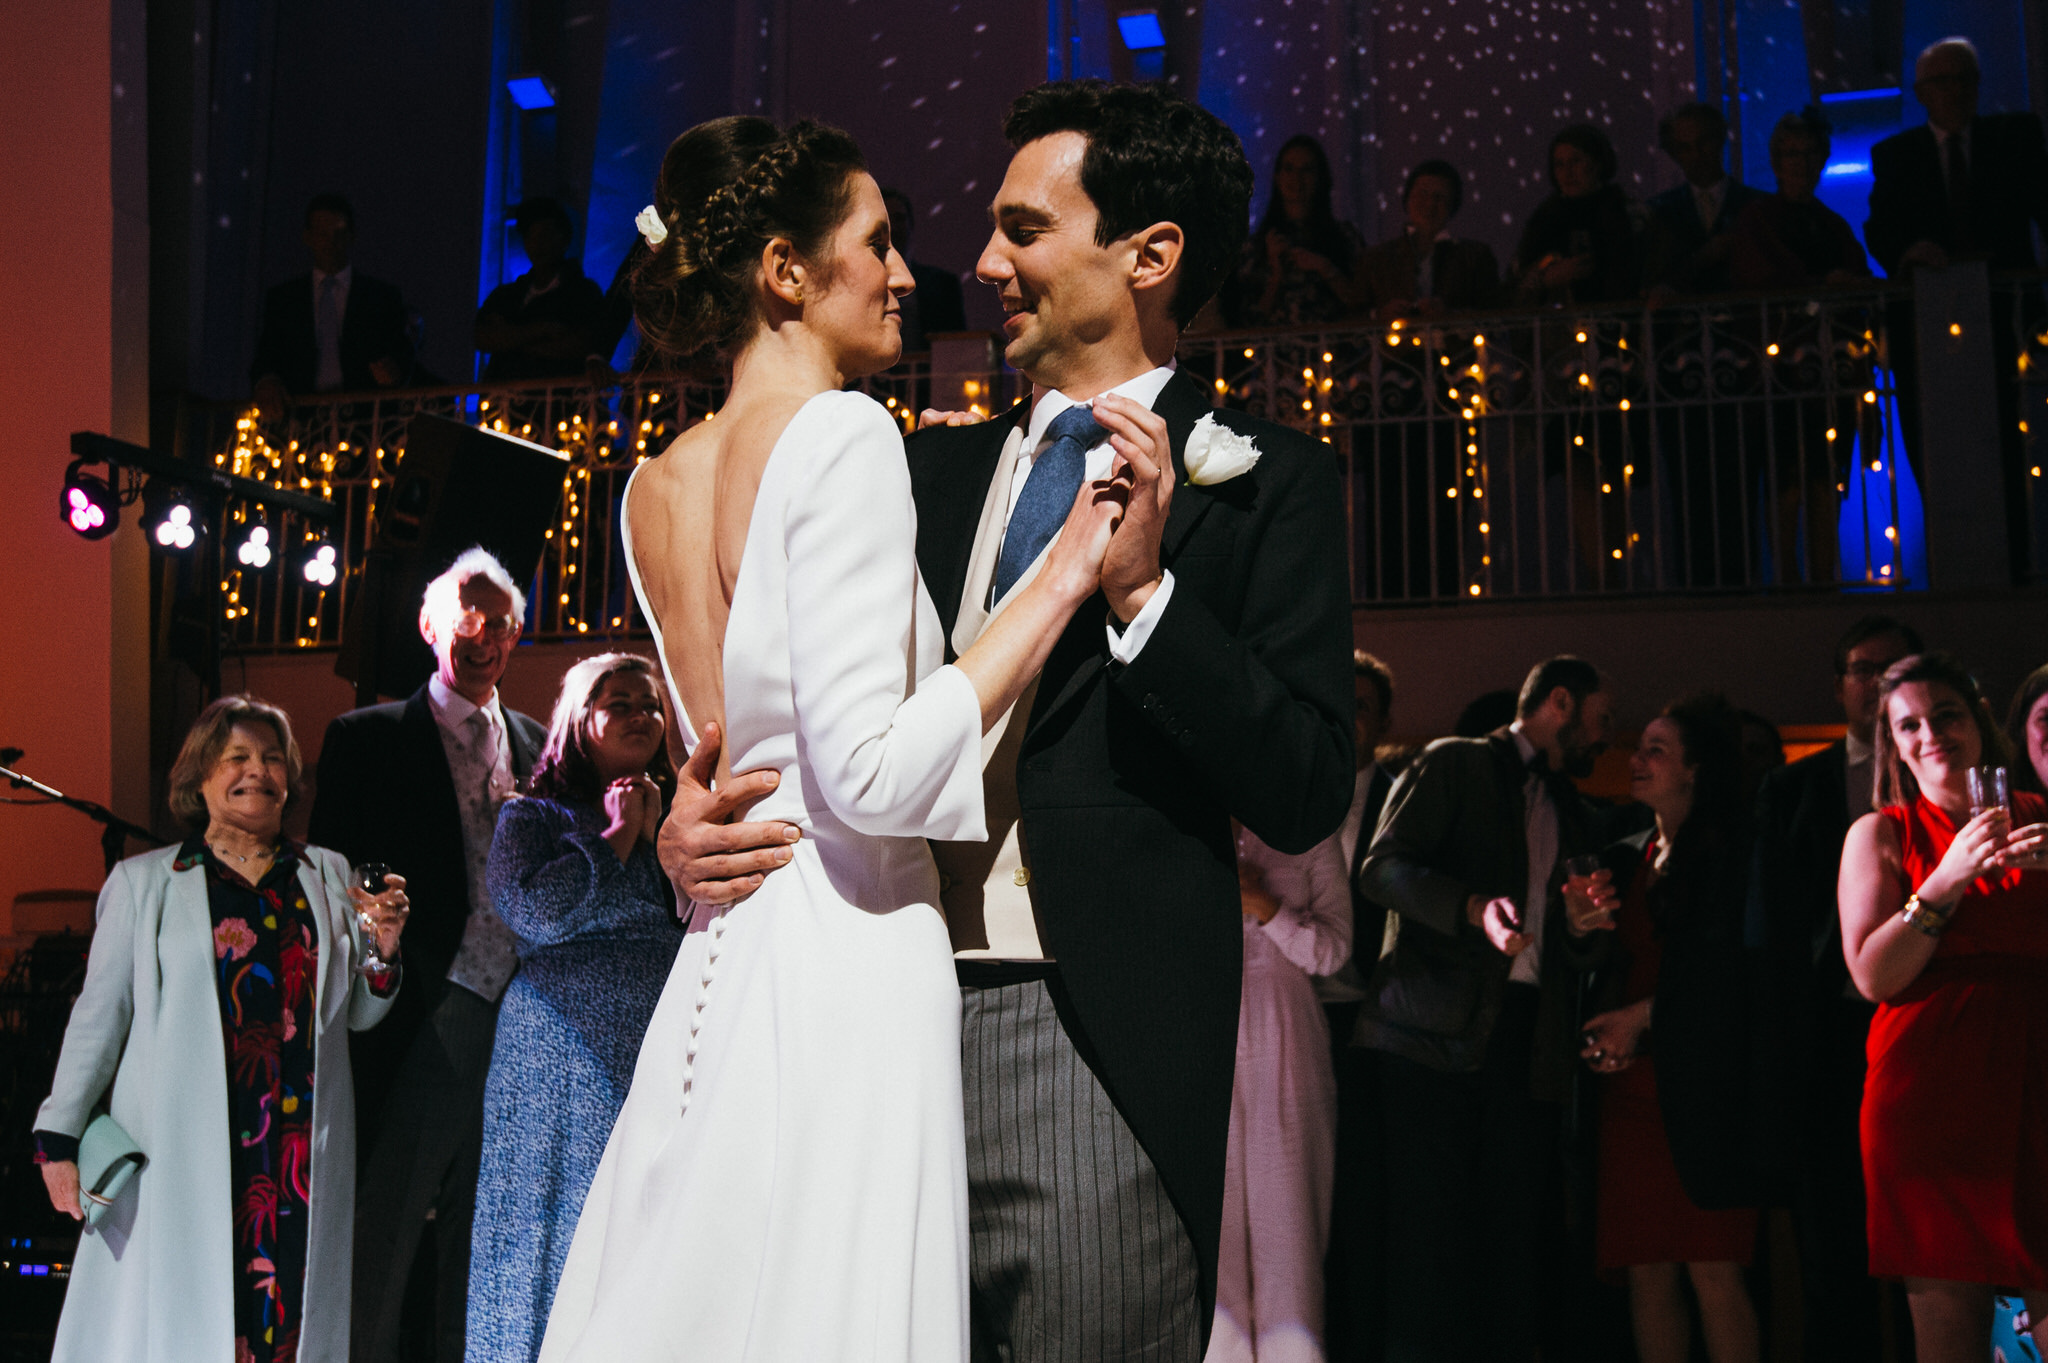 Sunbeam studios wedding first dance